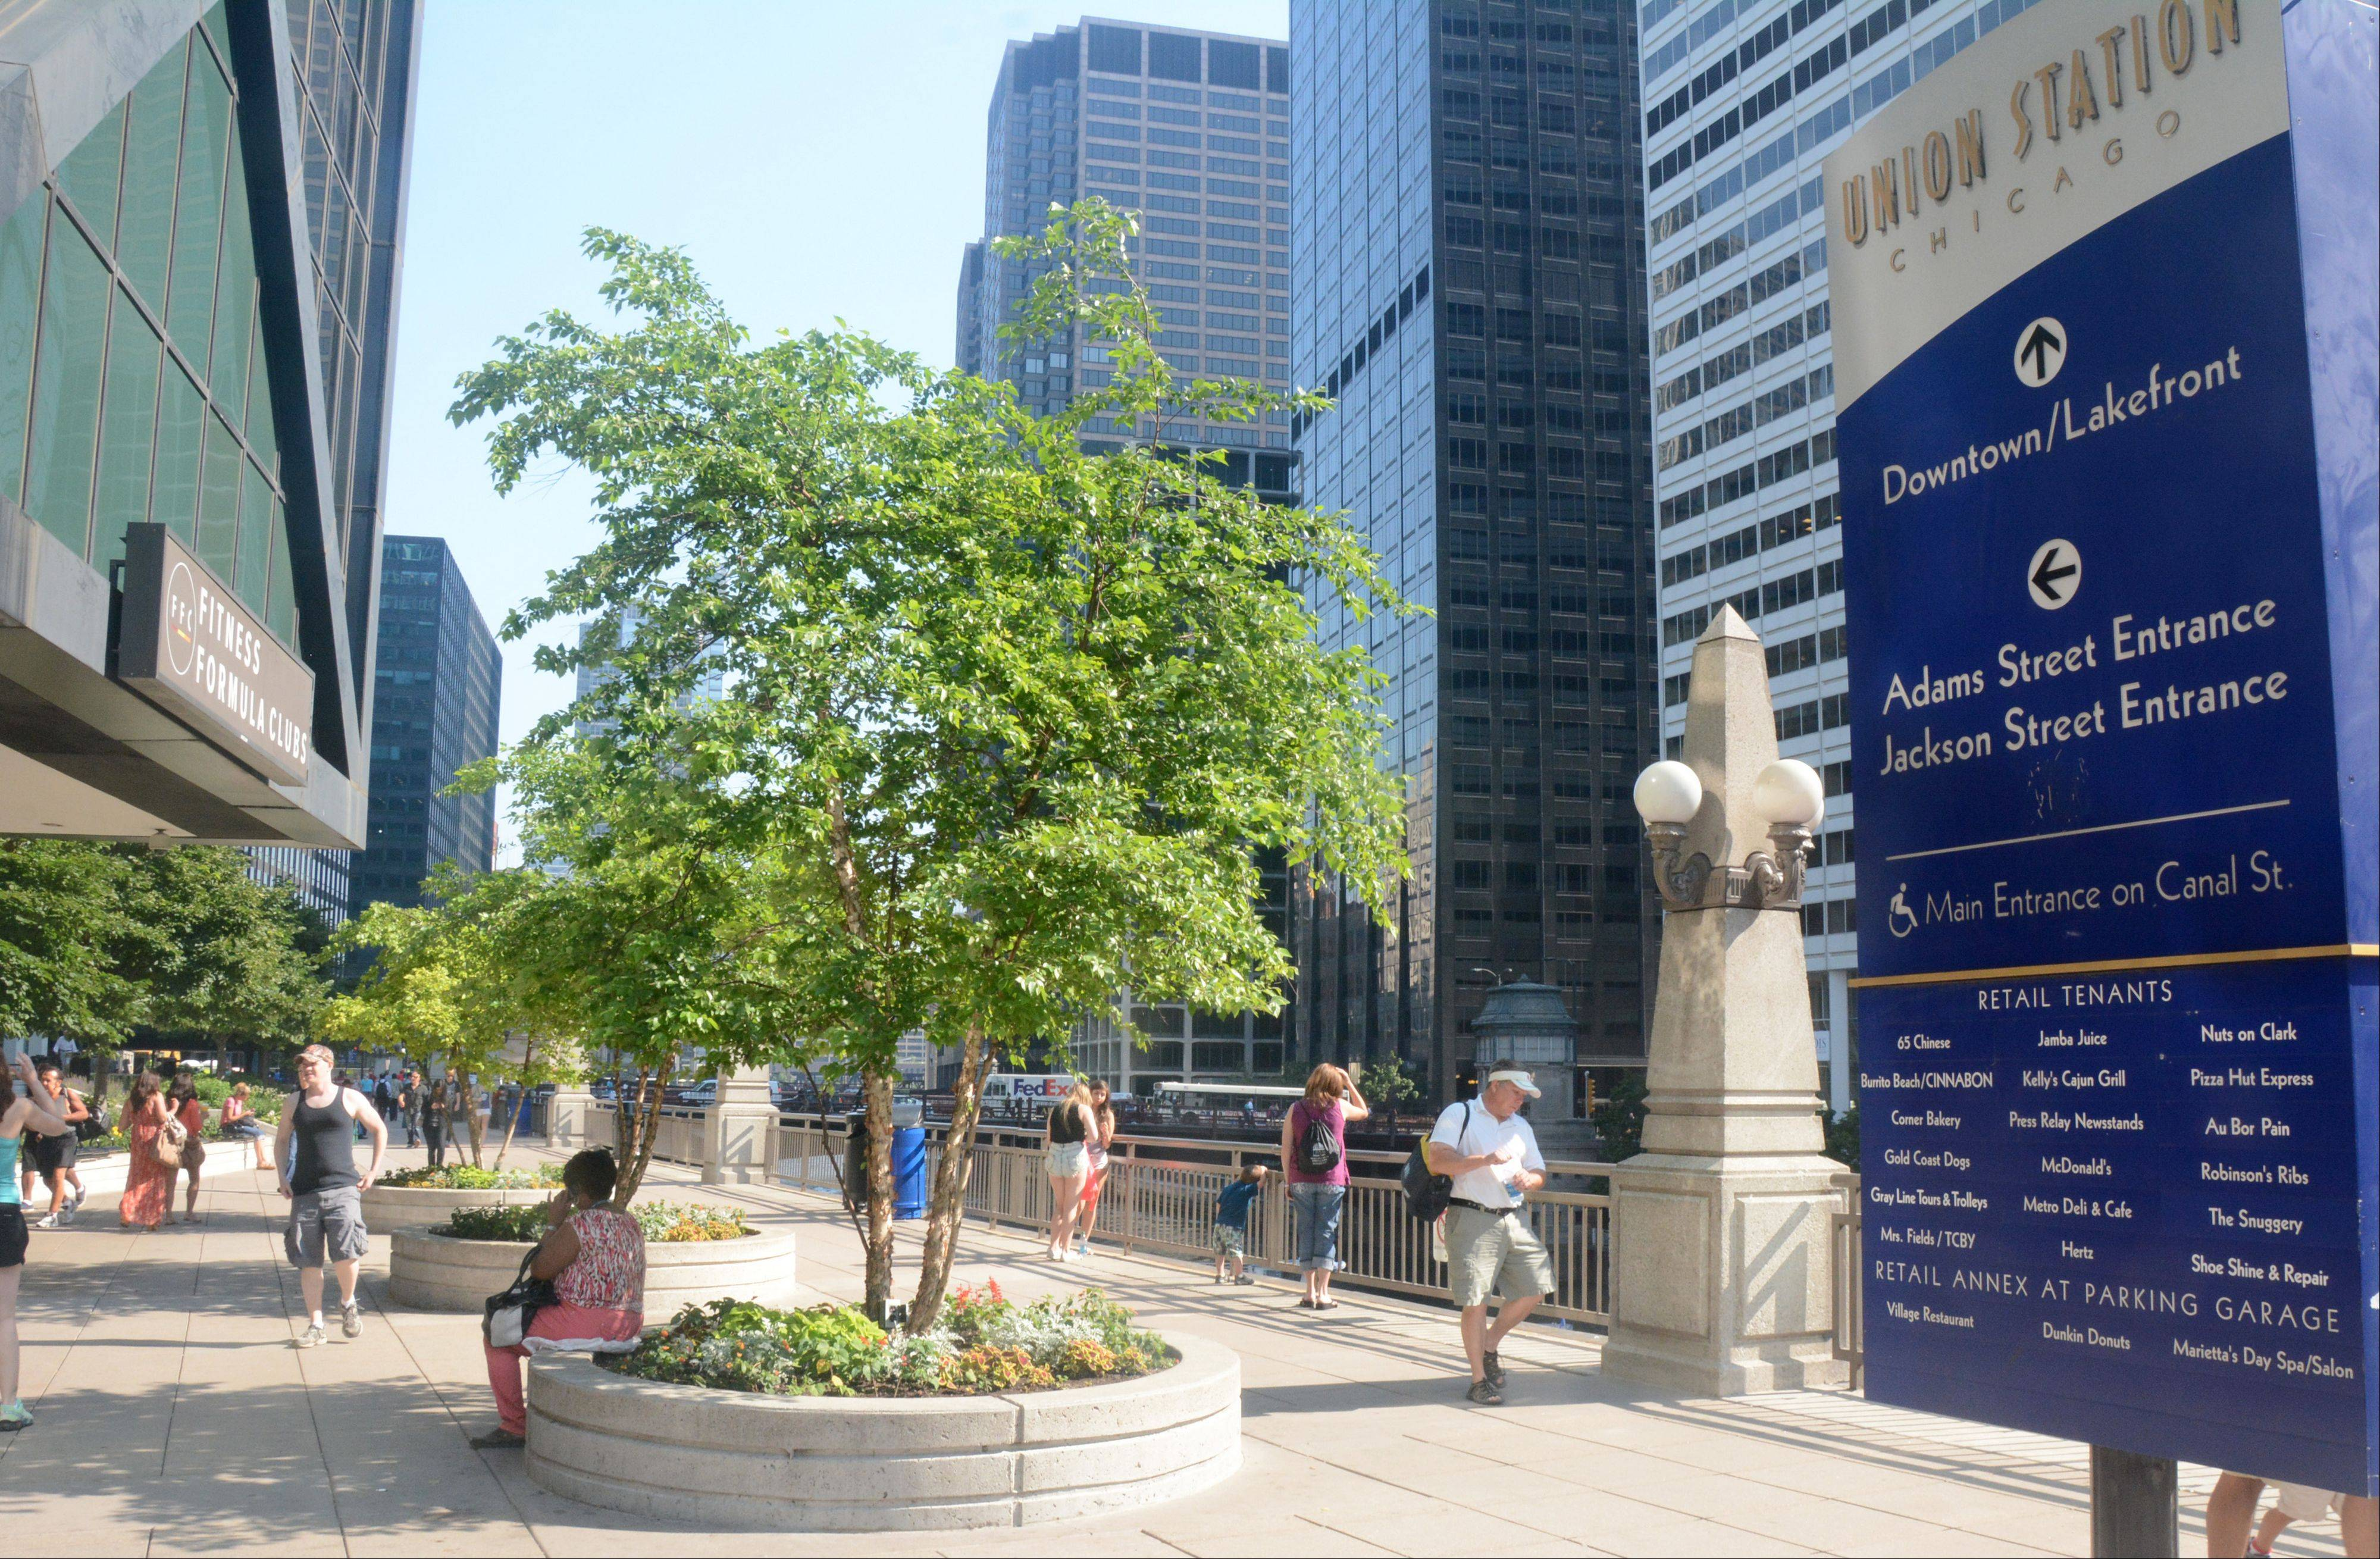 The area outside Union Station along the Chicago River is among three locations in a contest to create vibrant activity areas in Union Station.